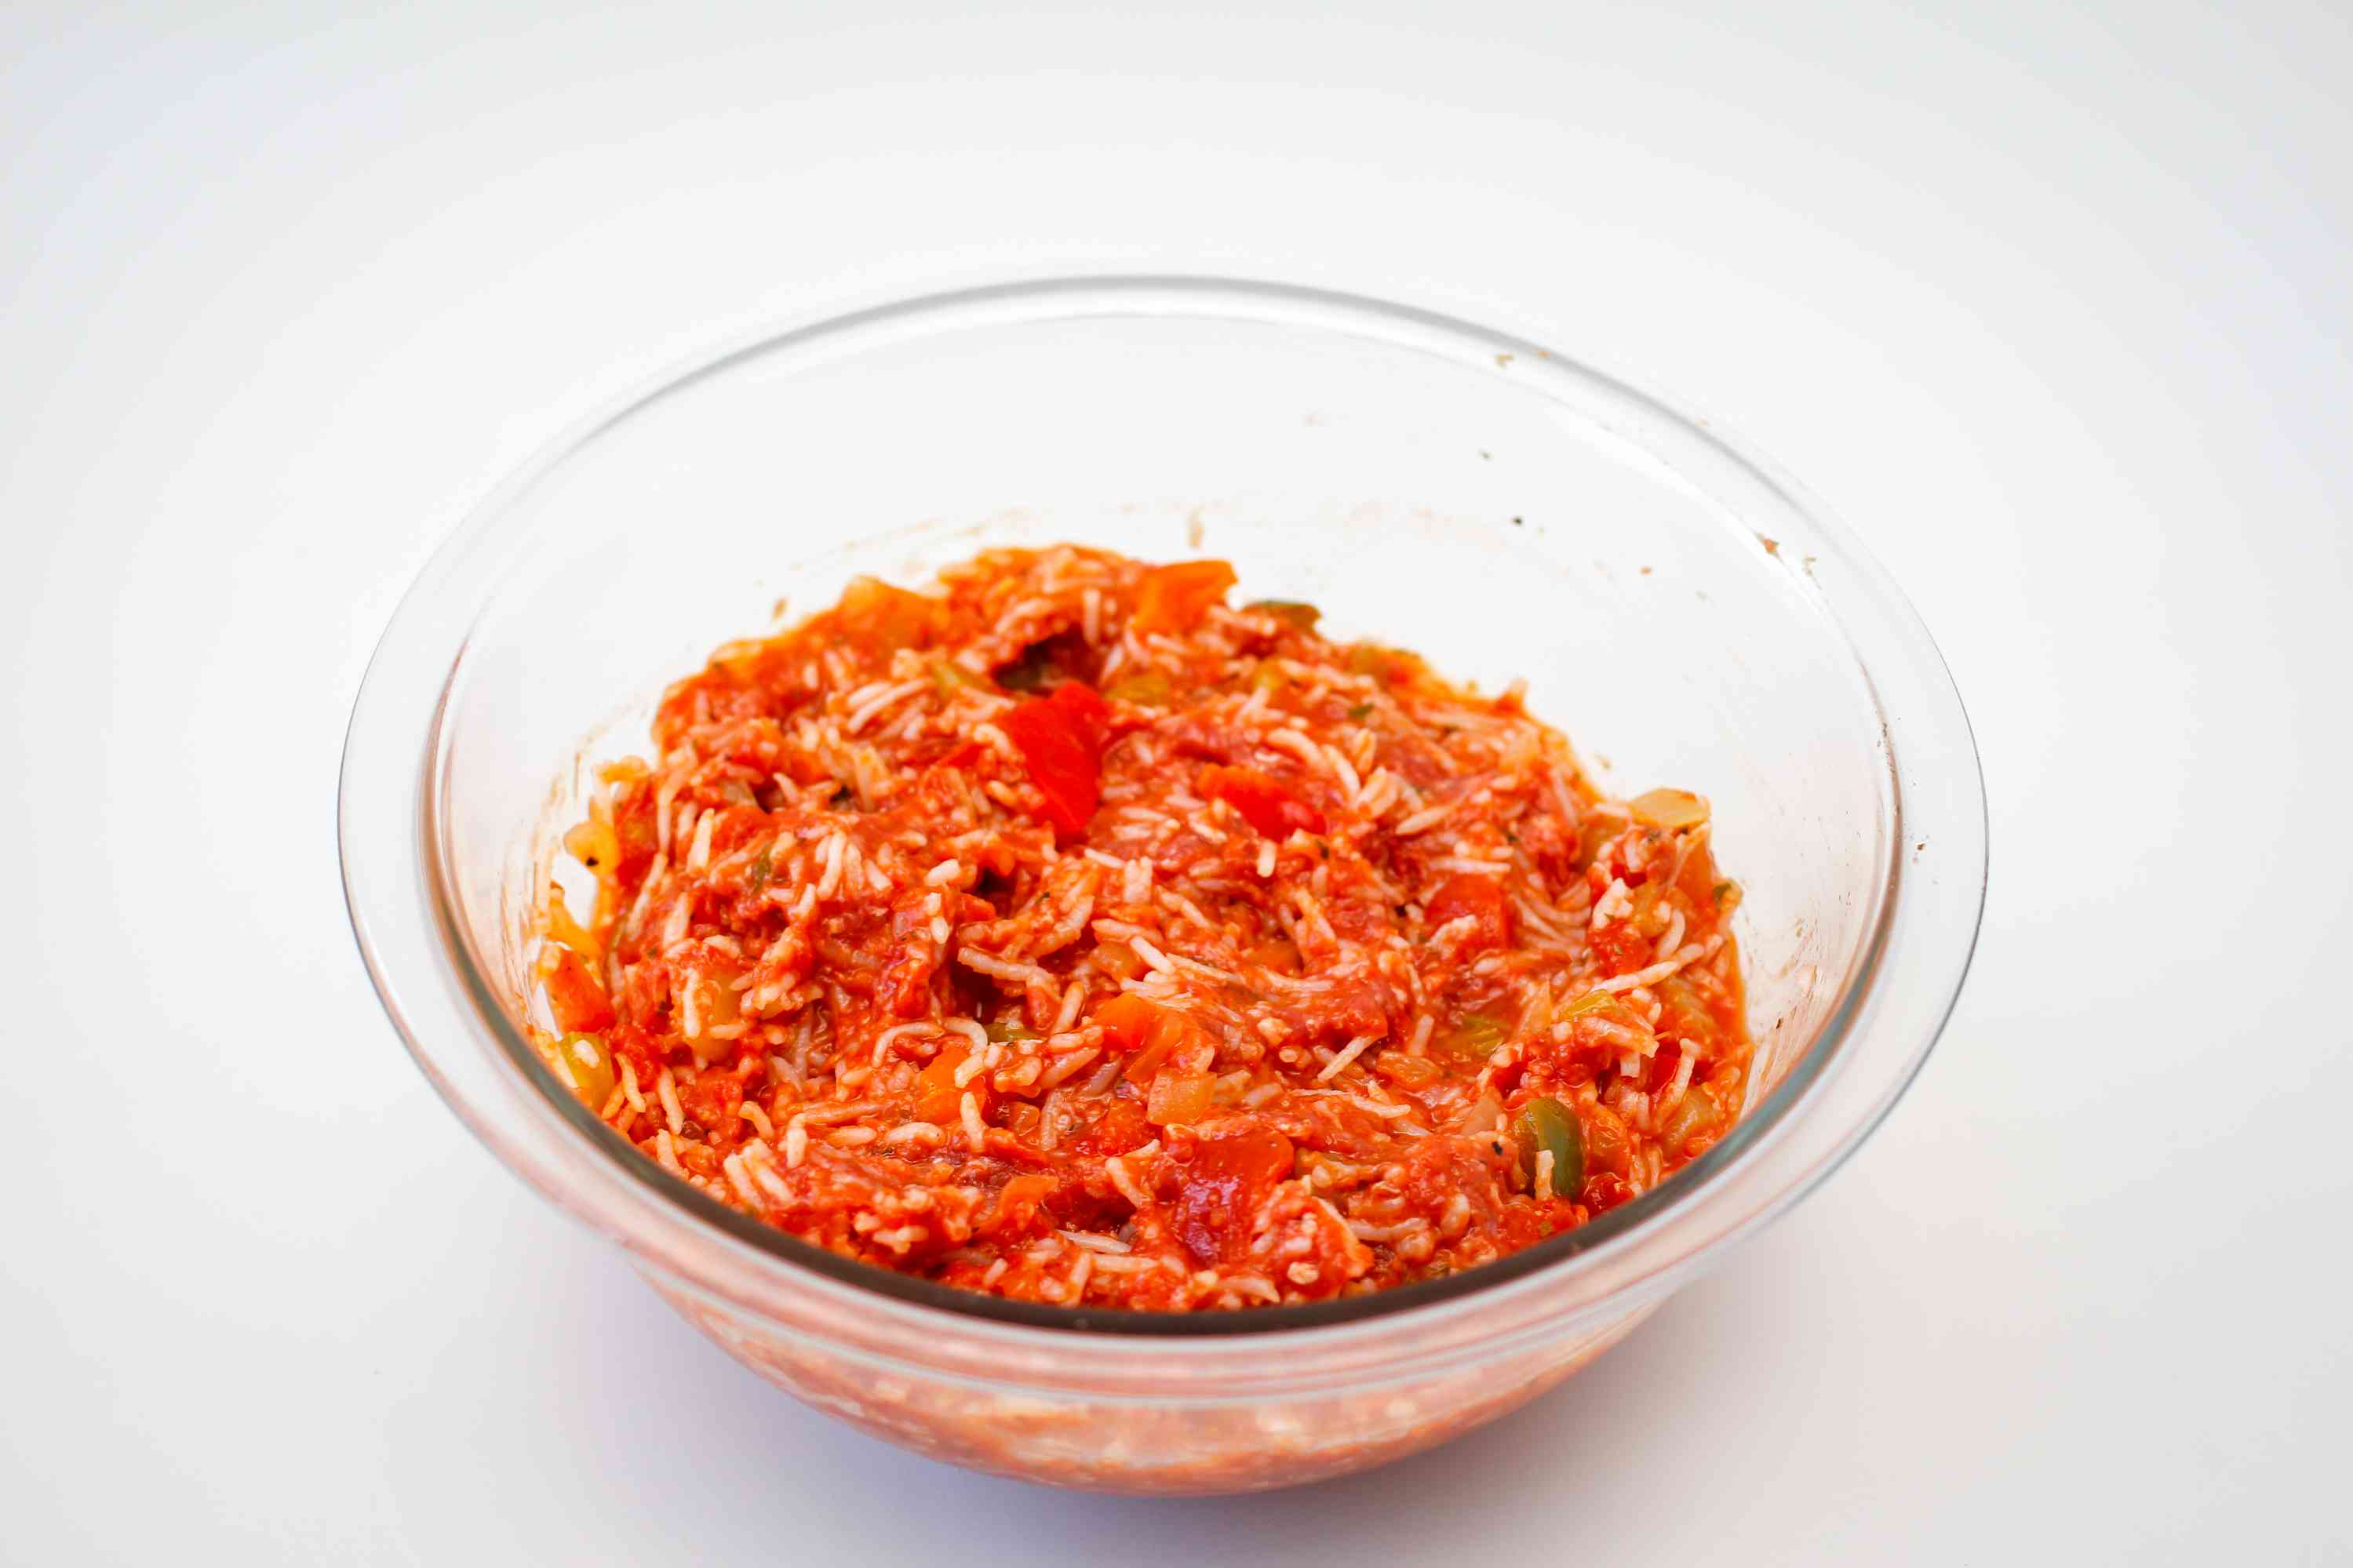 Ground beef mixed in a bowl with egg and tomato mixture